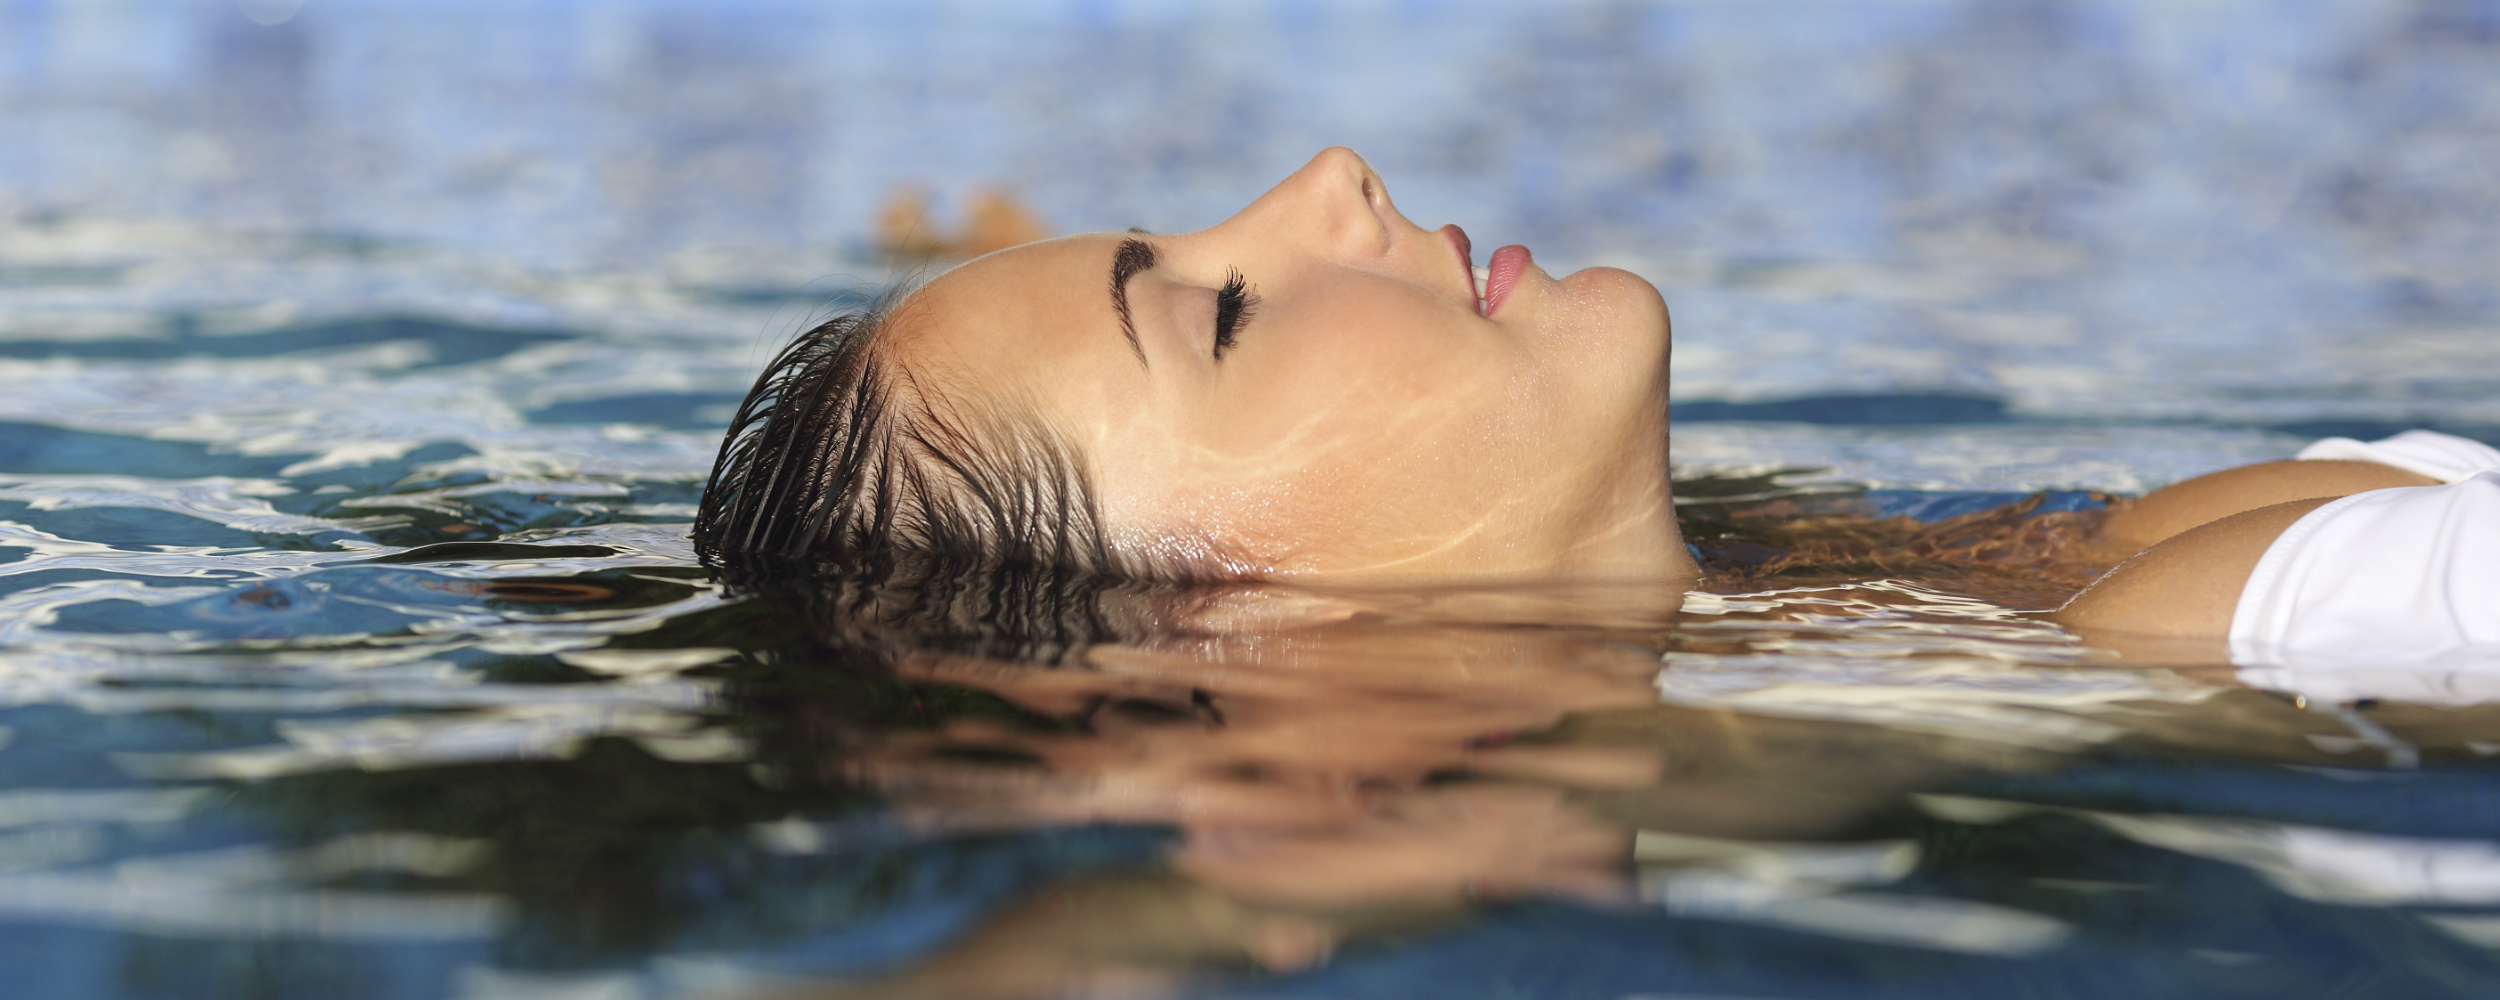 Woman in water.png